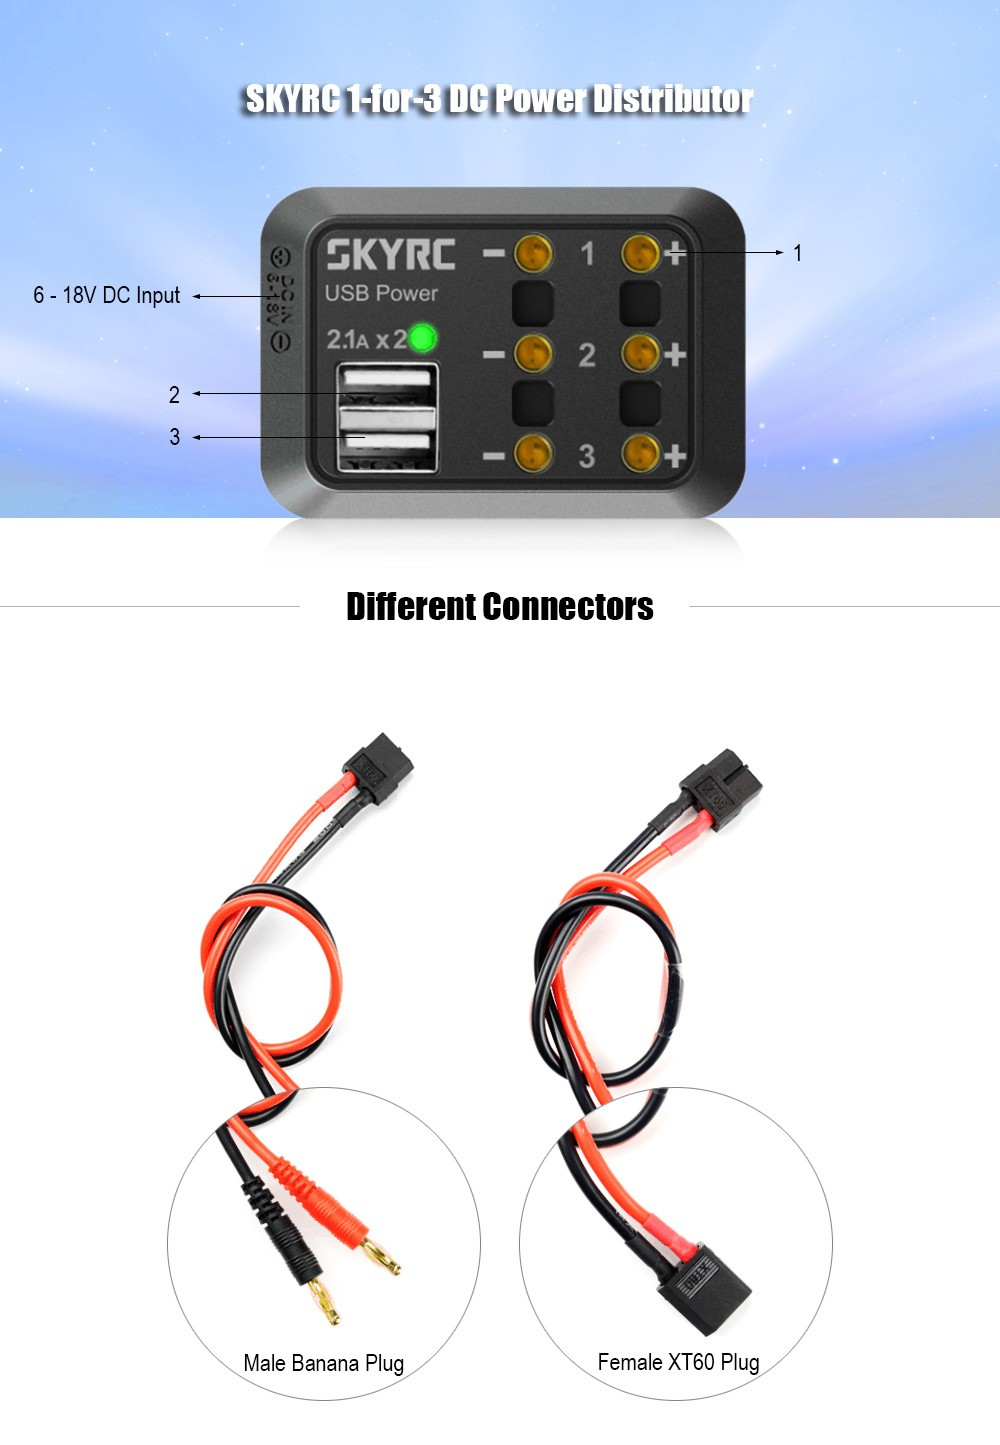 SKYRC 1-for-3 Mini DC Power Distributor with Double USB Outputs